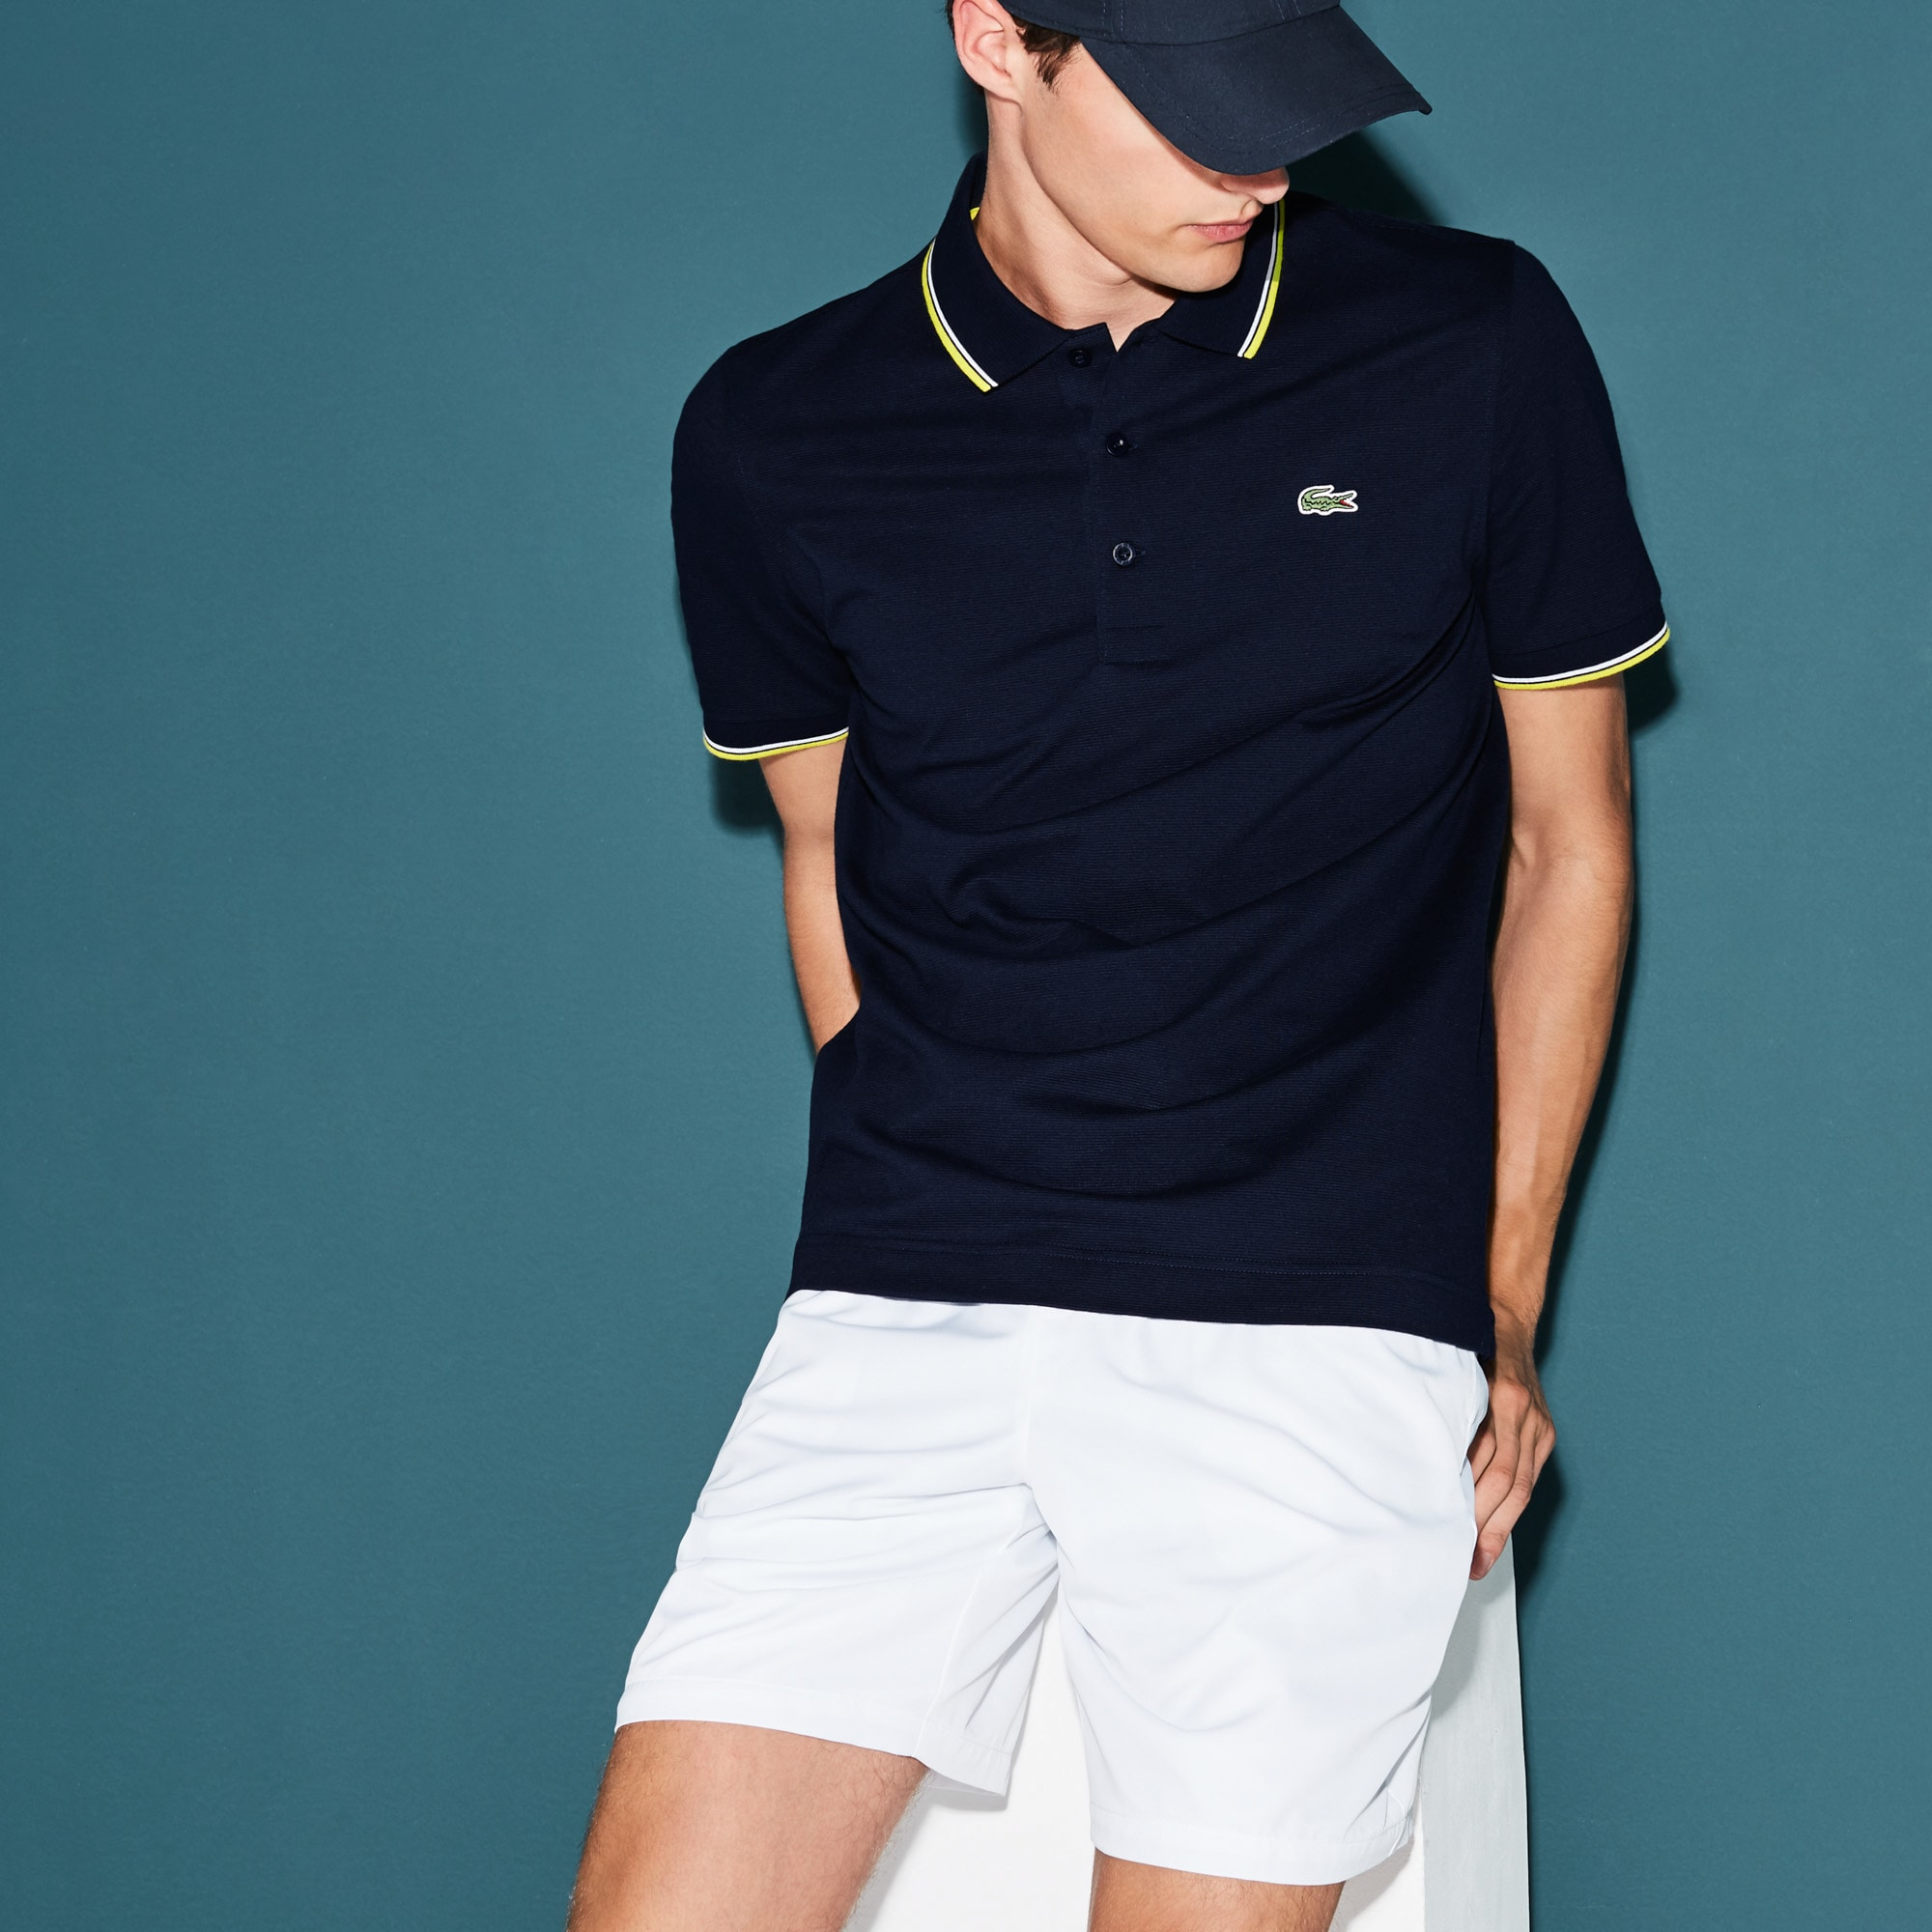 Men's Lacoste SPORT Ultra-light Knits Polo Shirt With Piping